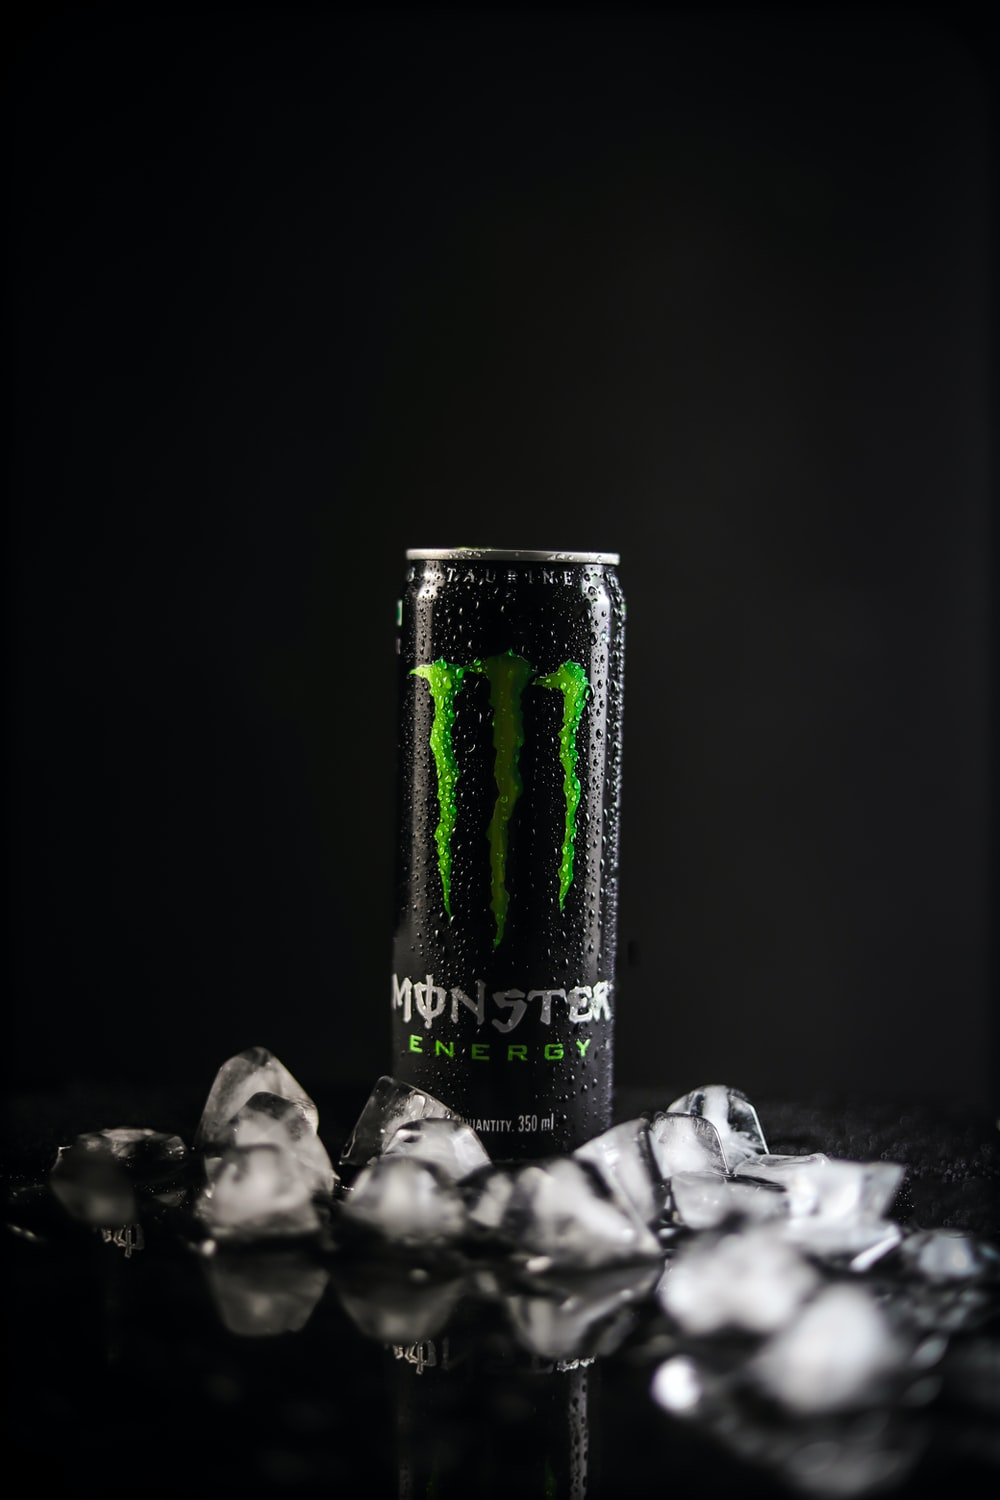 monster energy drink can on black and white textile